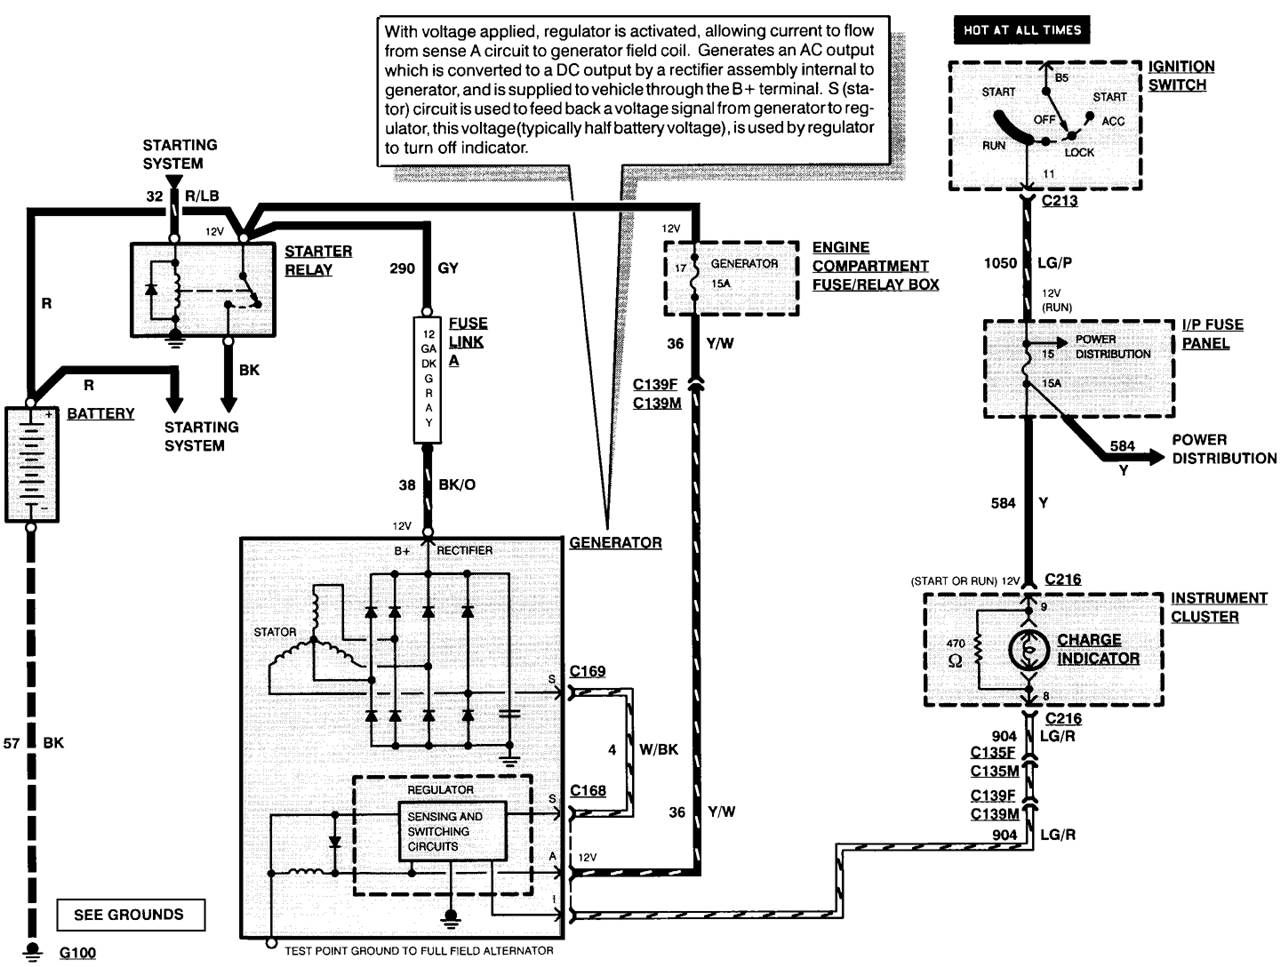 Ford Alternator Wiring Diagrams Carsut Understand Cars And Drive Automobile Diagram Internal Regulator